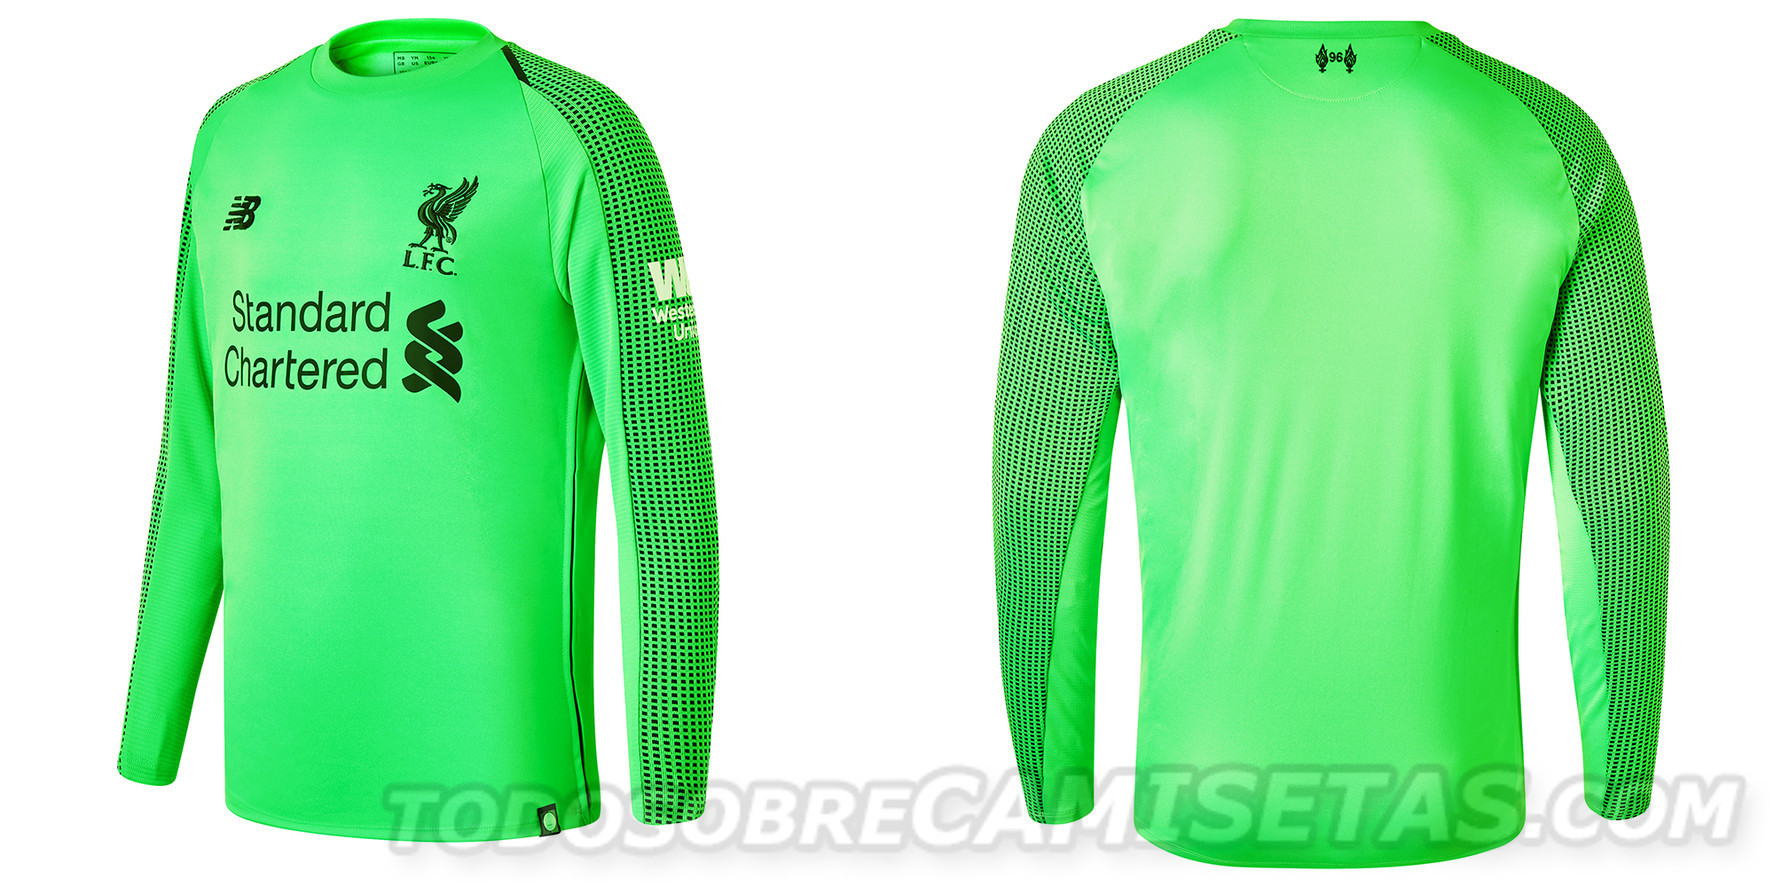 Liverpool-2018-19-New-NEW-BALANCE-GK-away-kit-1.jpg